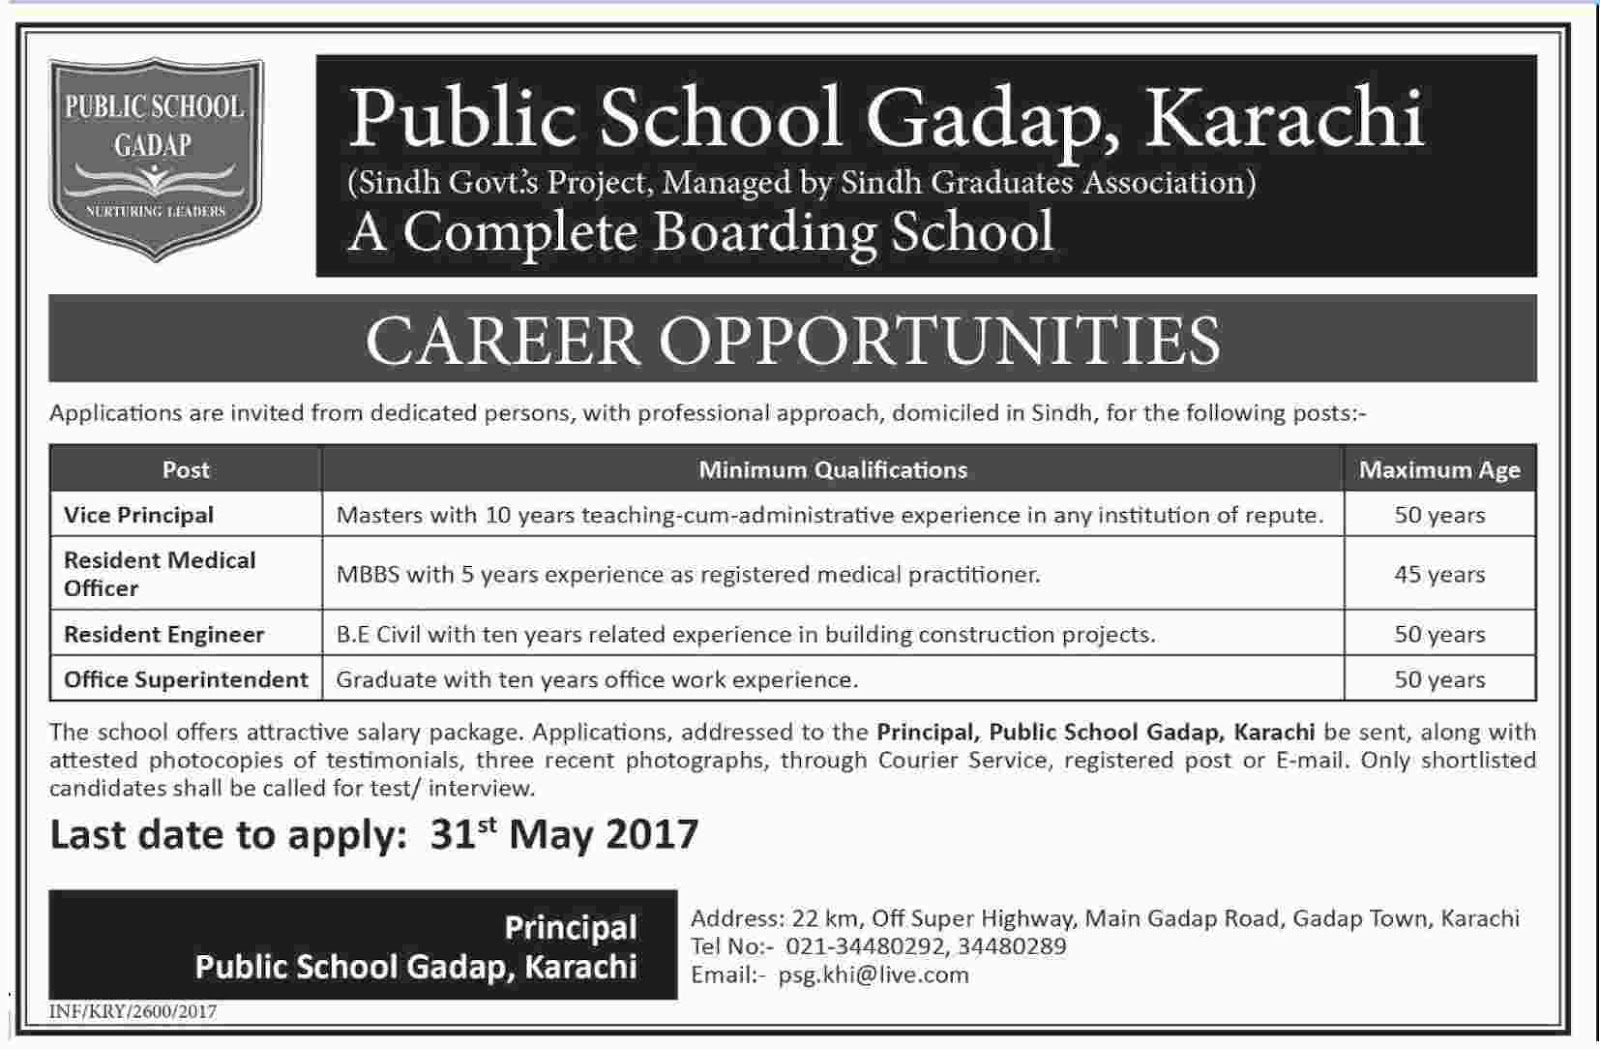 jobs in Public School Gadap Karachi  15 May 2017